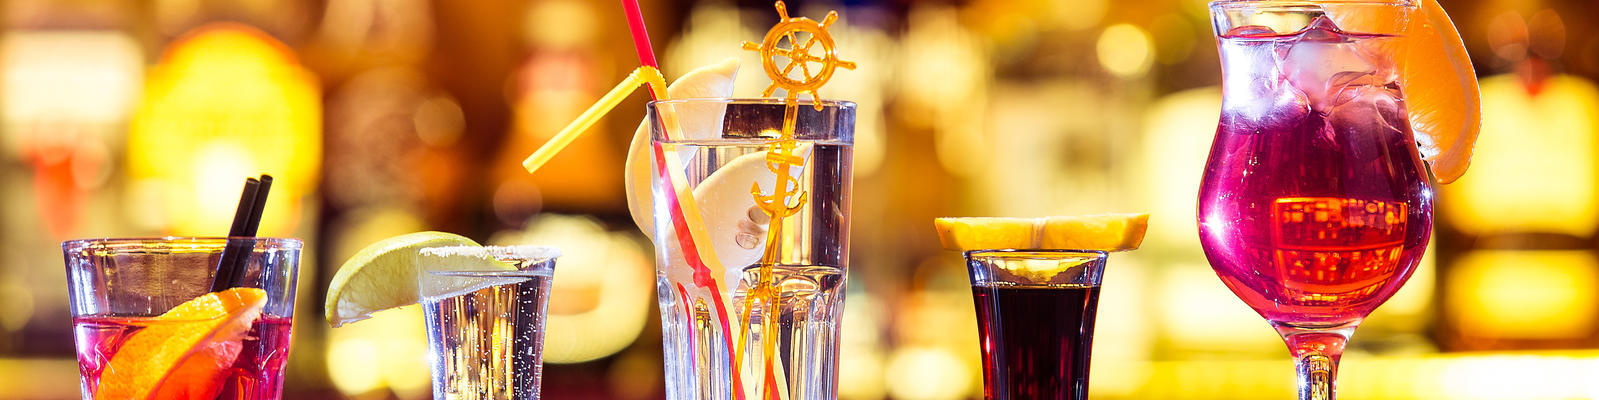 Fred. Olsen Cruise Lines Alcohol Policy (Photo: Goncharov_Artem)